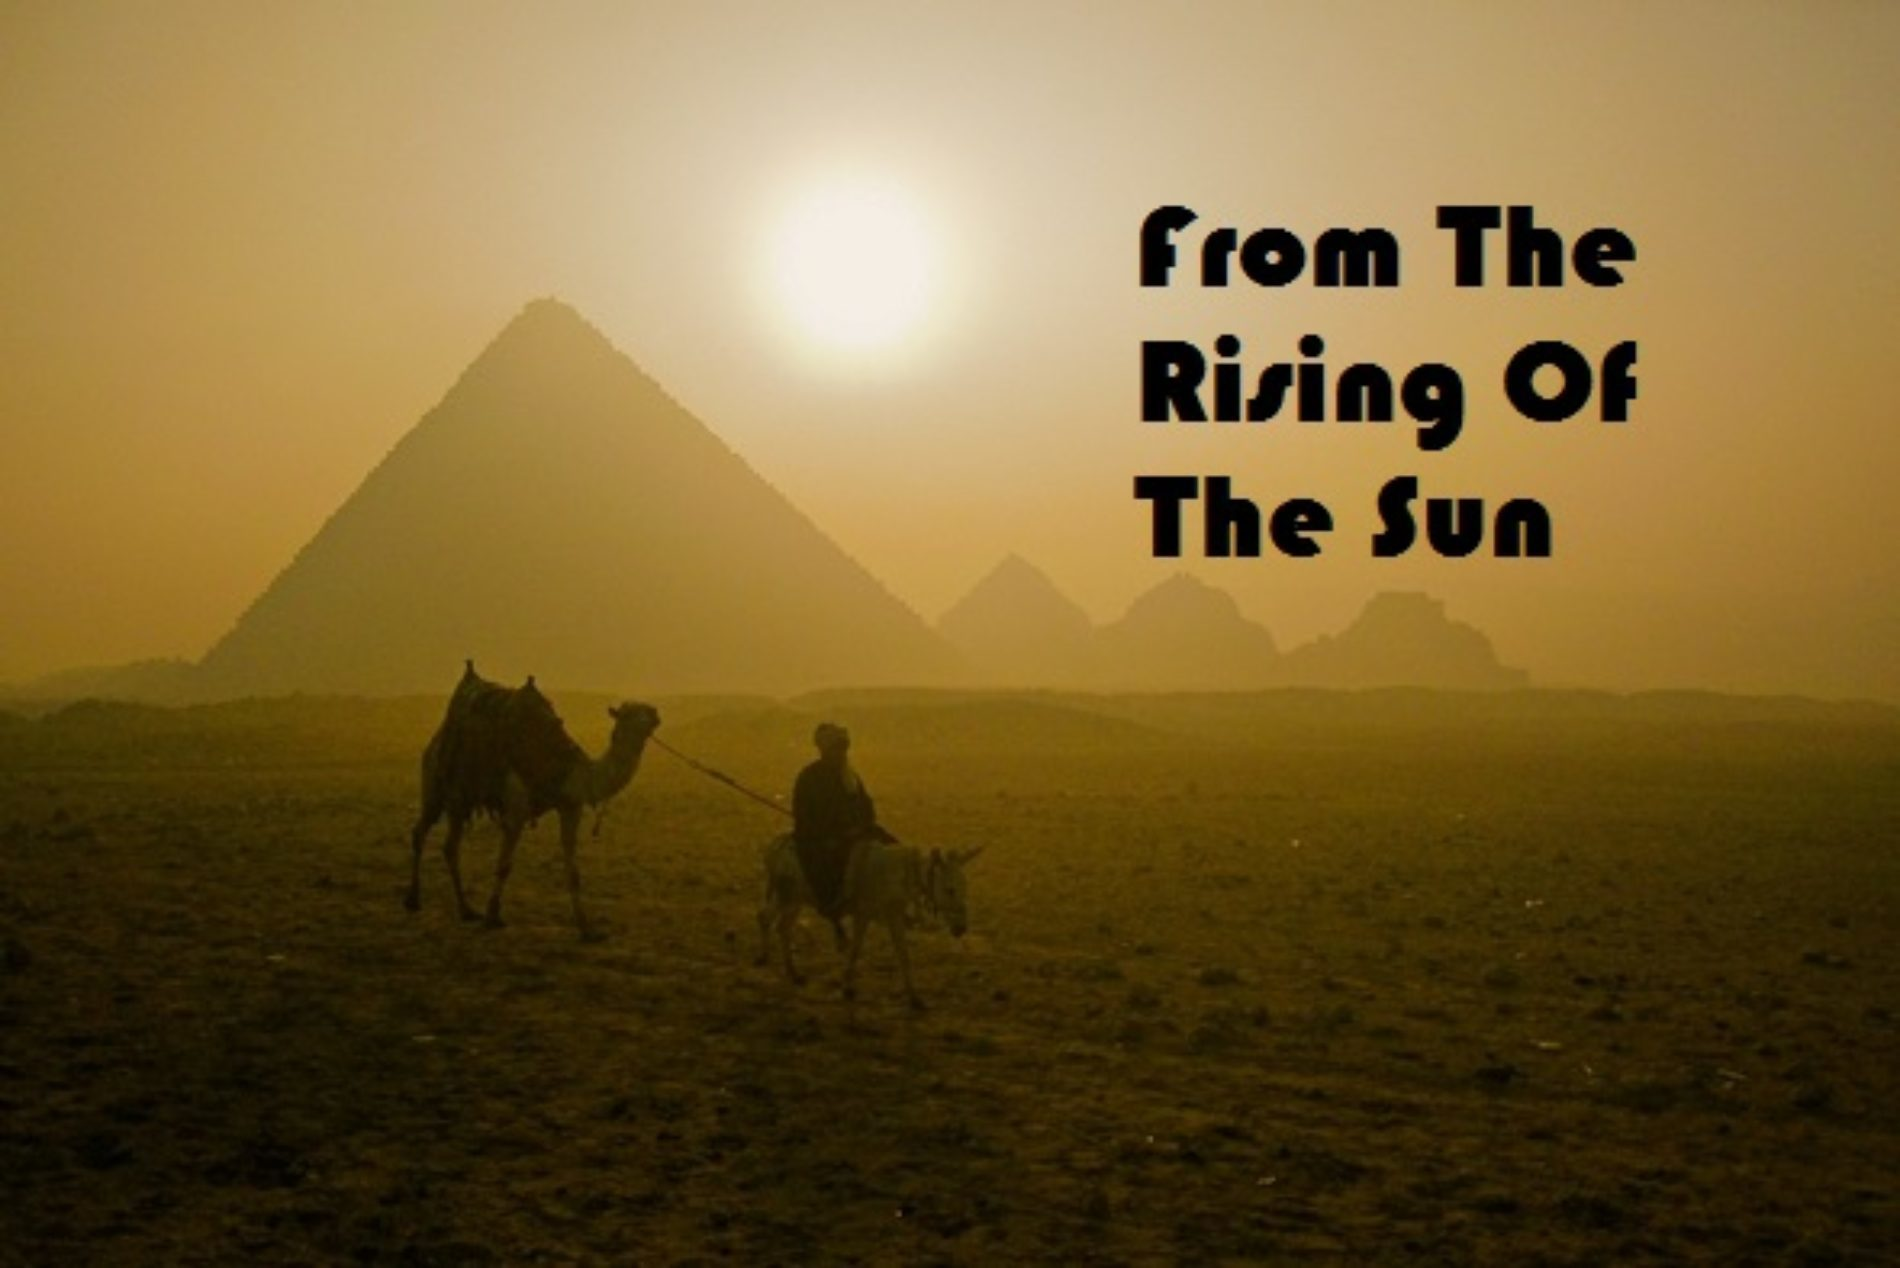 FROM THE RISING OF THE SUN (Episode 3)